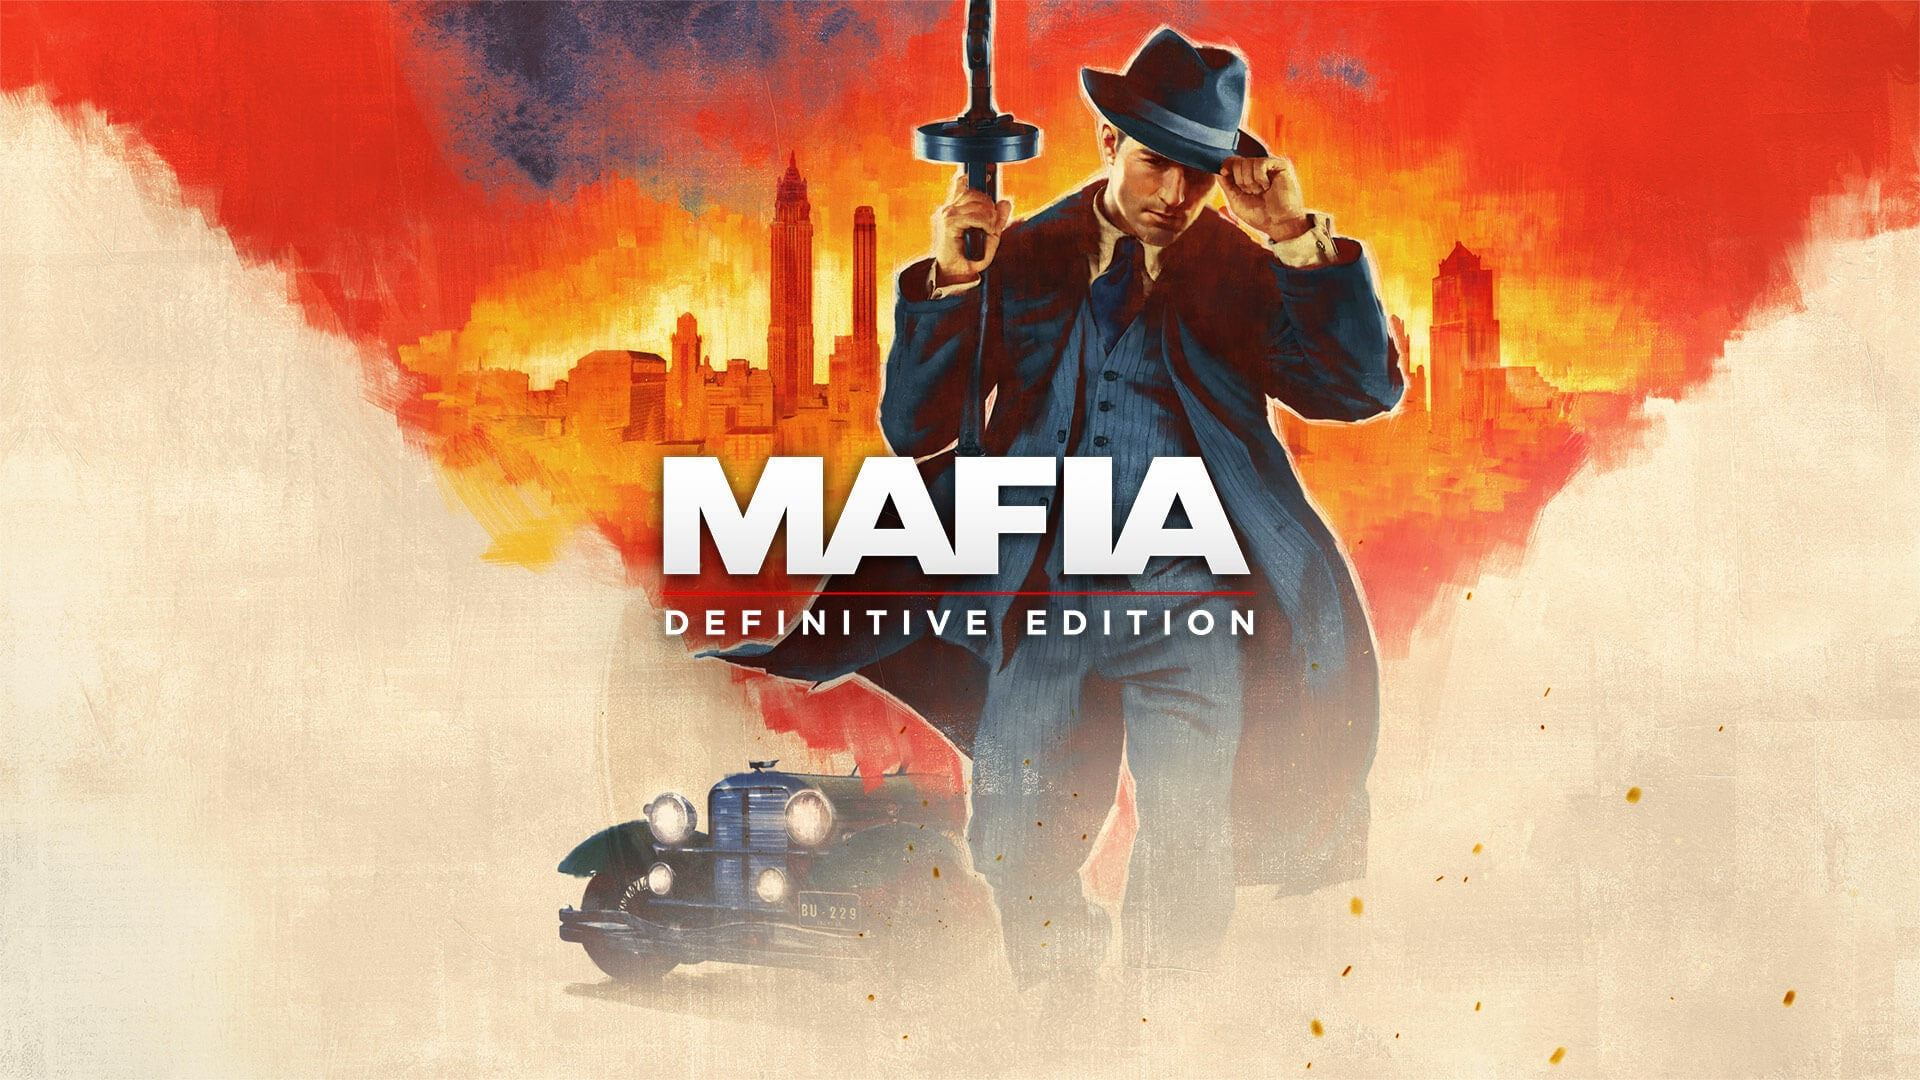 Mafia: Definitive Edition Air Date And Details